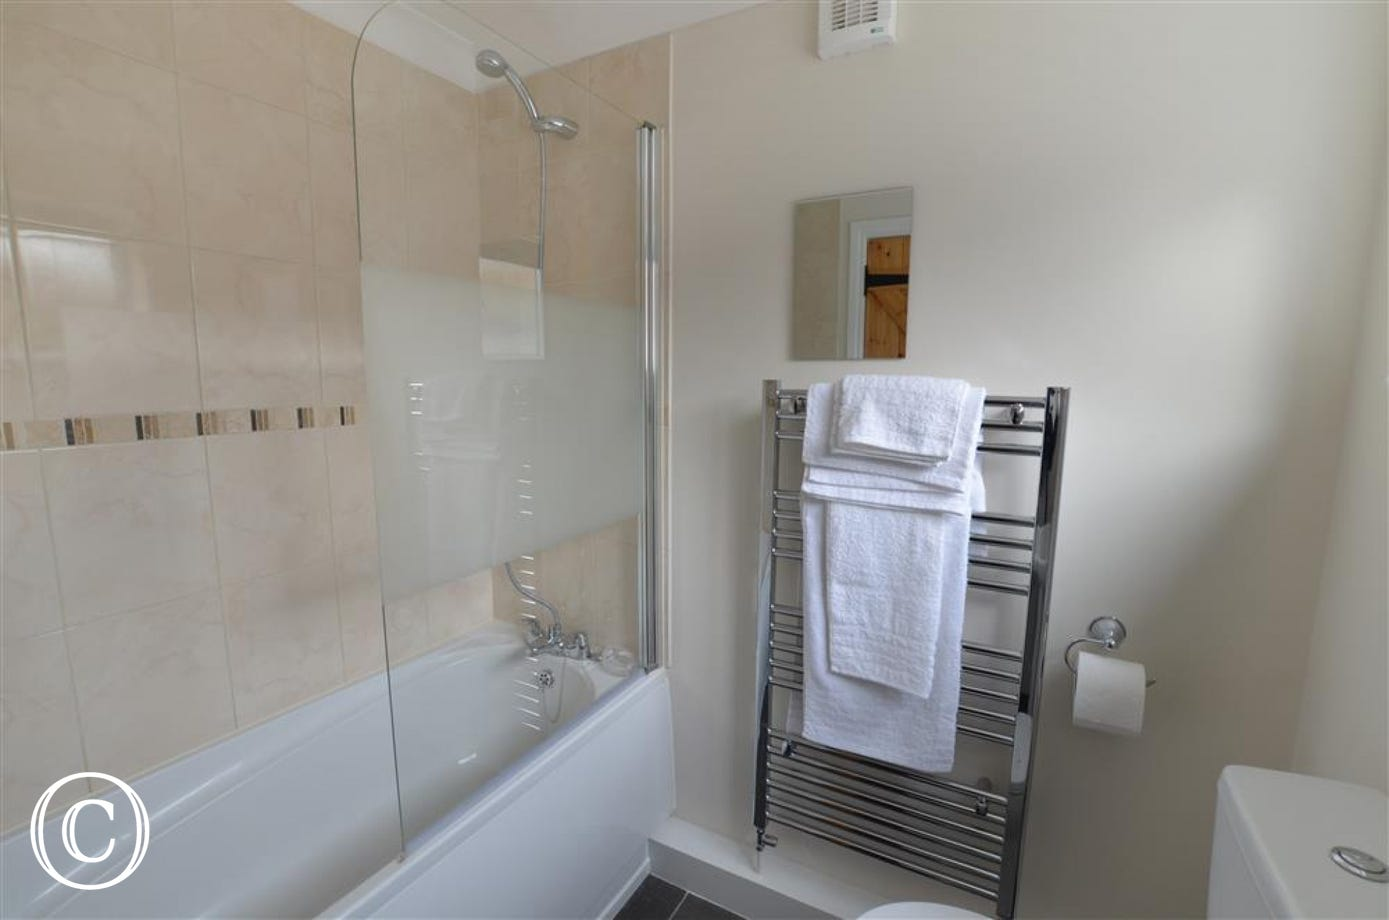 The newly fitted bathroom has a good sized heated towel rail.